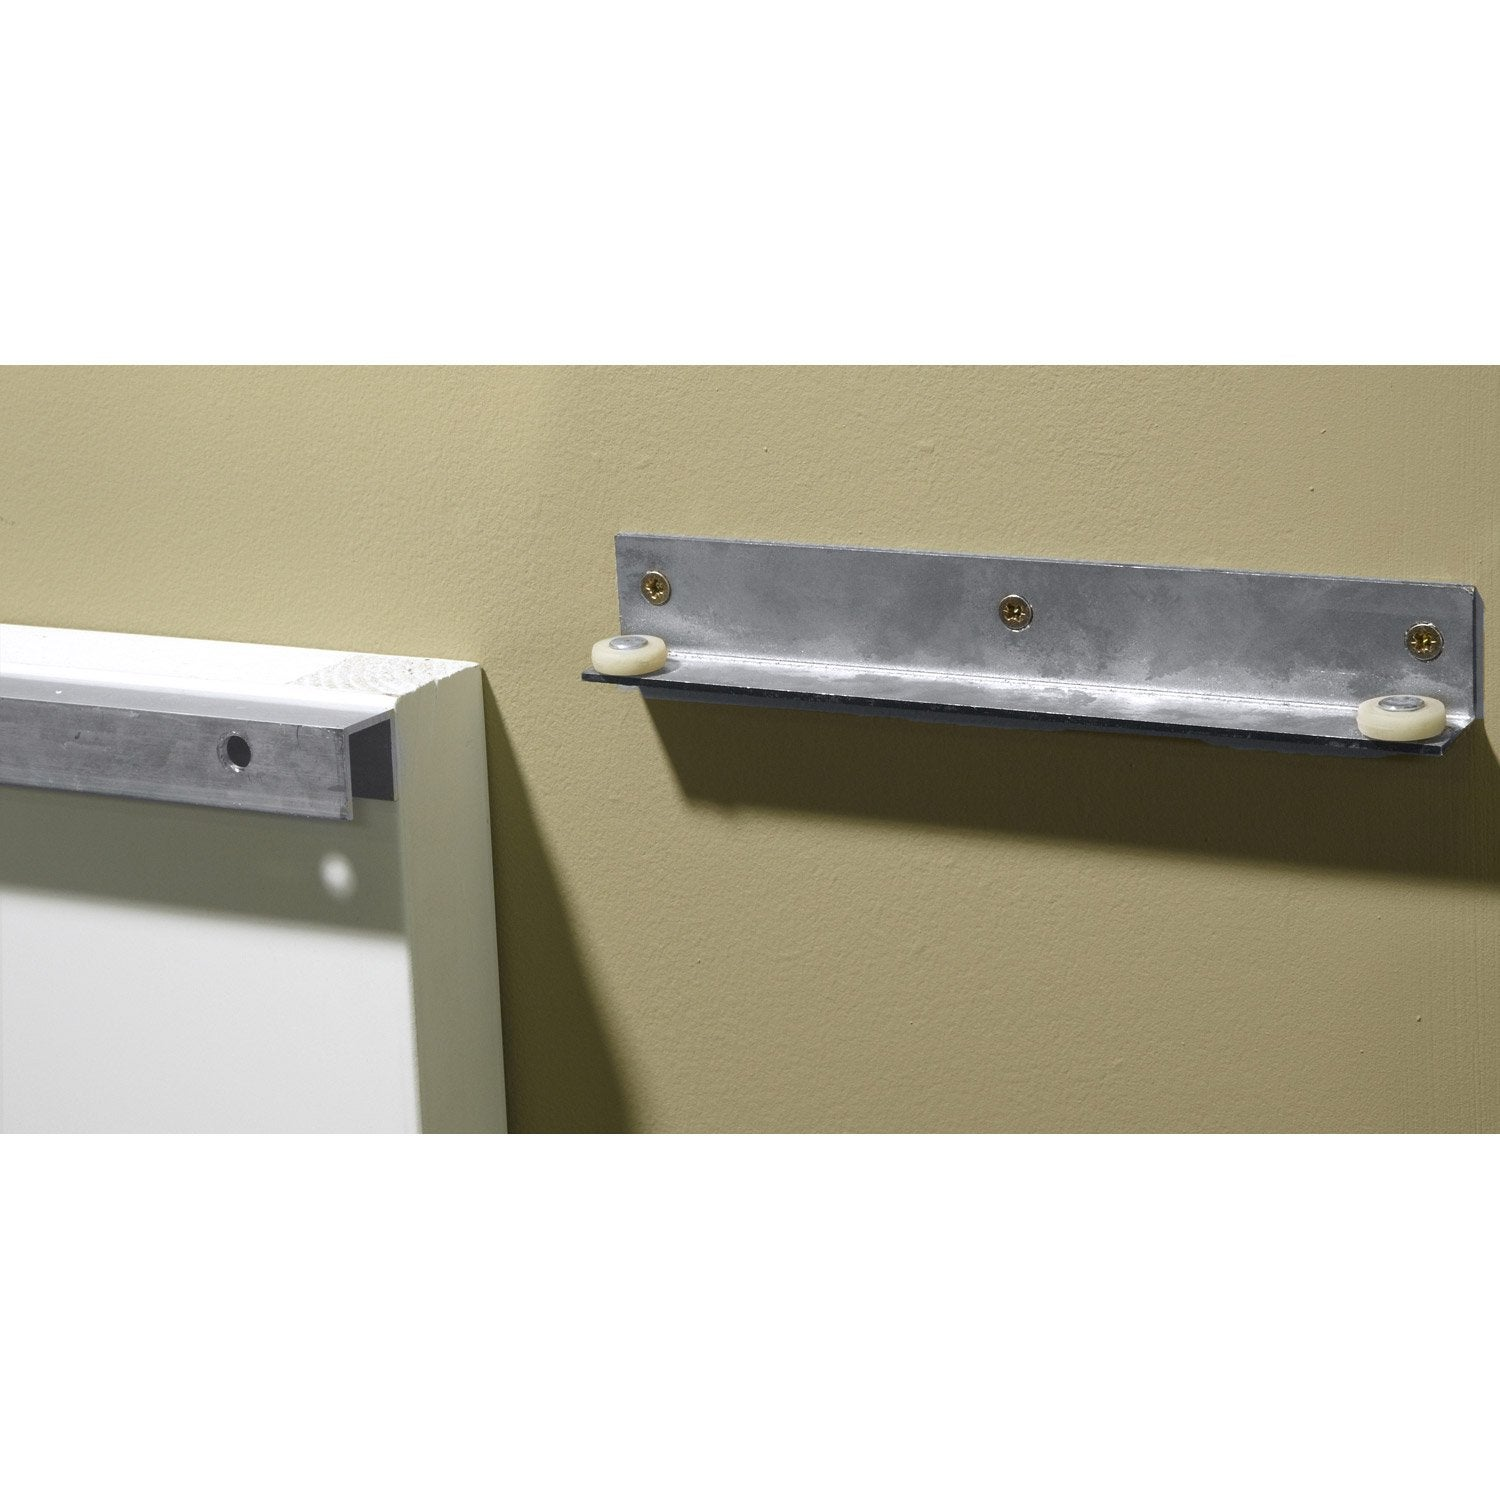 Rail coulissant secret artens pour porte de largeur 113 cm leroy merlin - Fixation rail porte coulissante ...